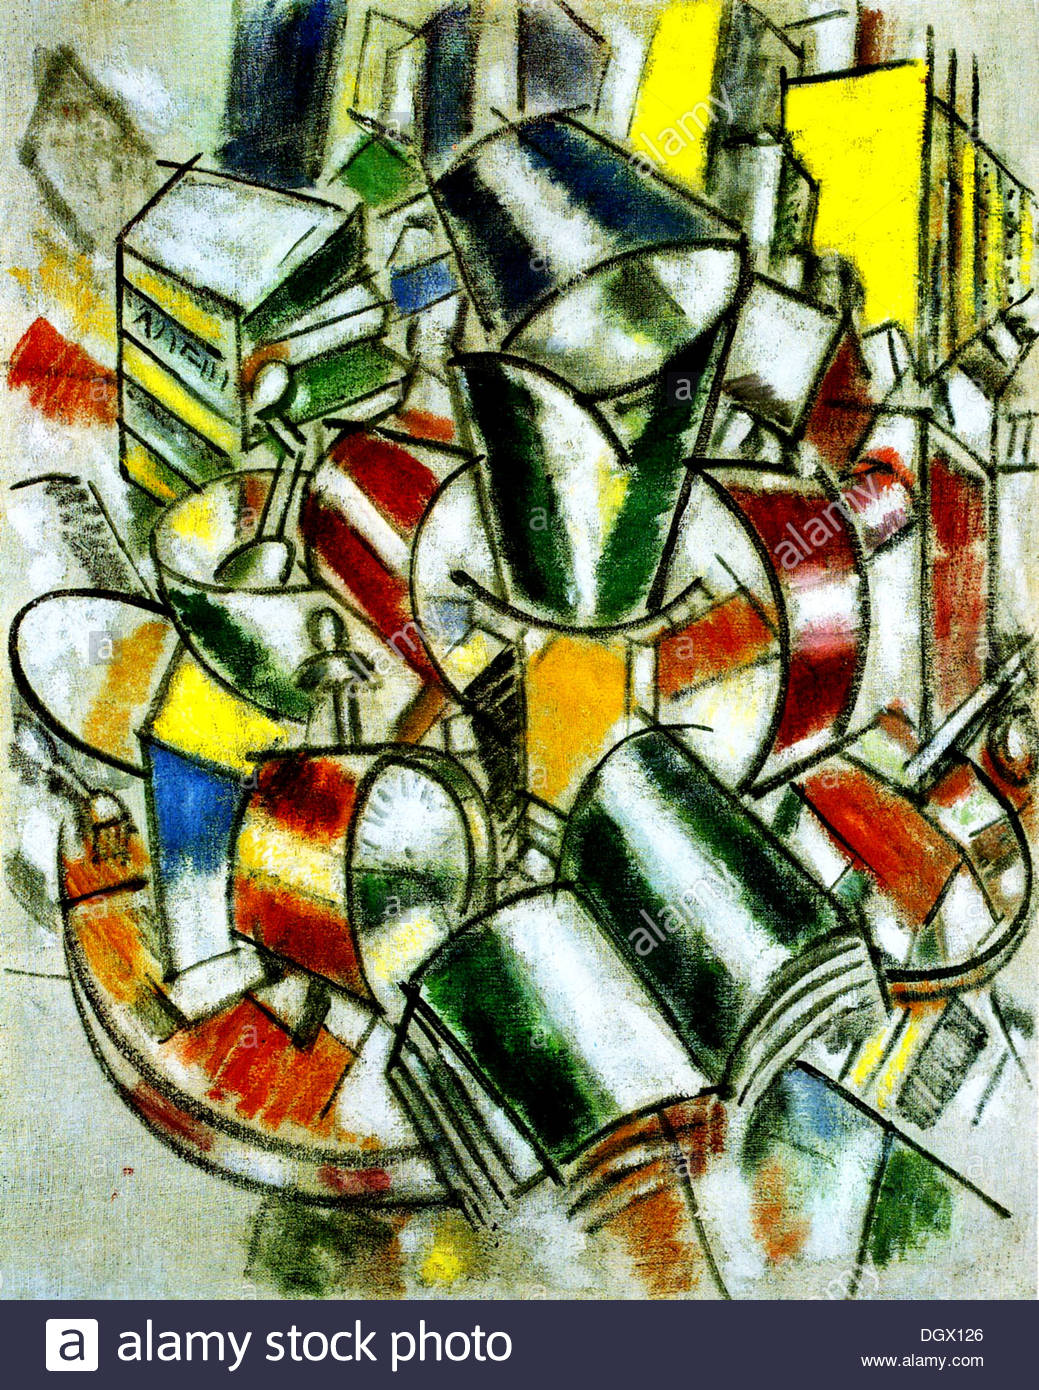 Still Life - by Fernand Léger, 1914 - Stock Image